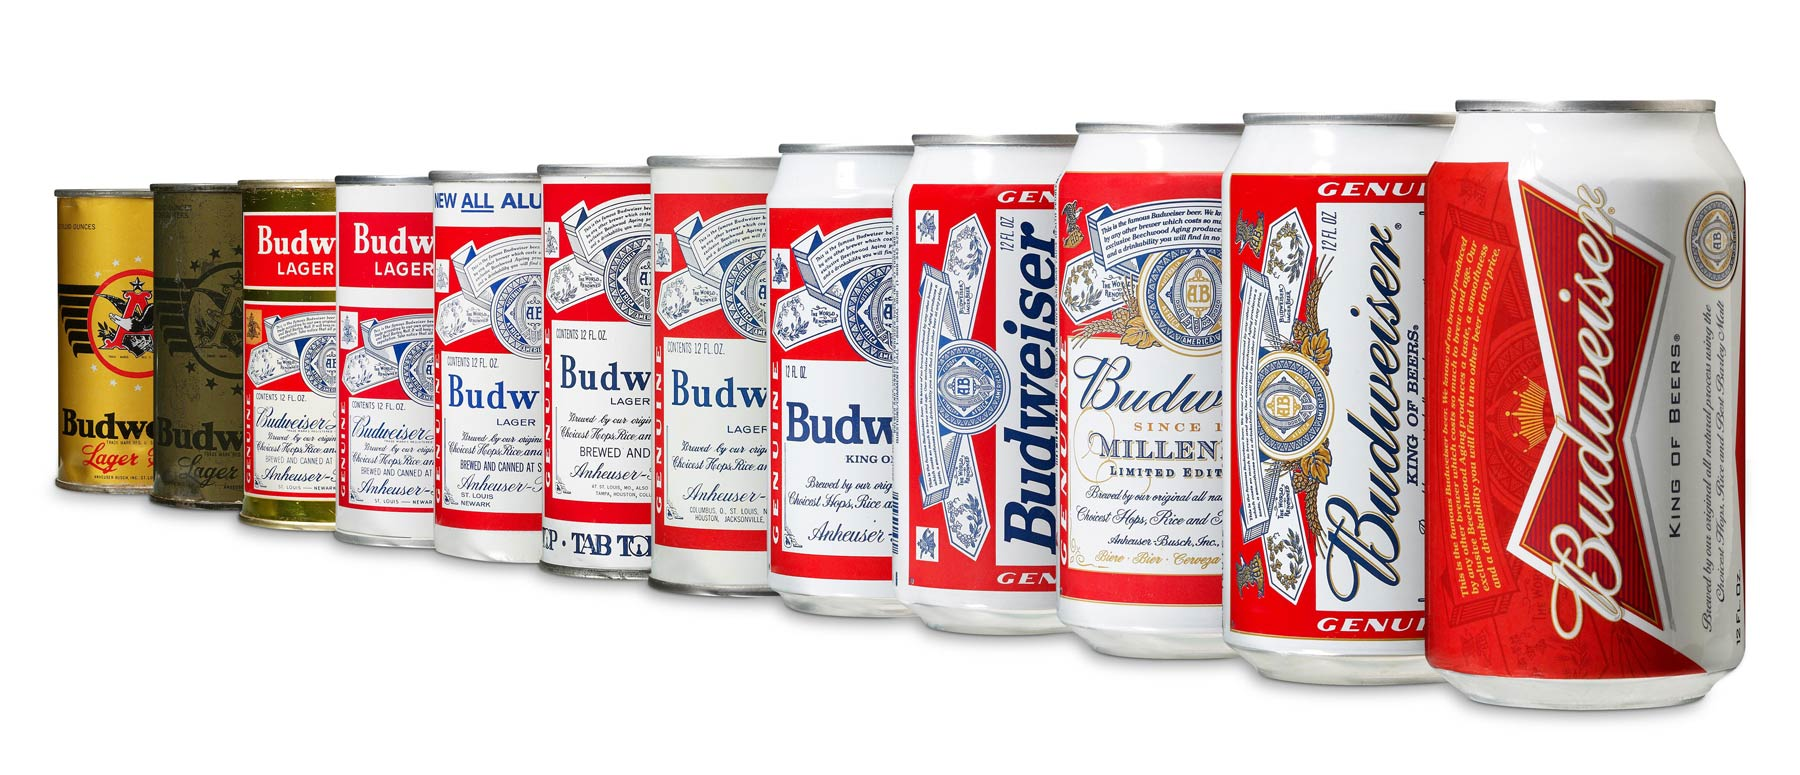 Lineup of previous can designs.